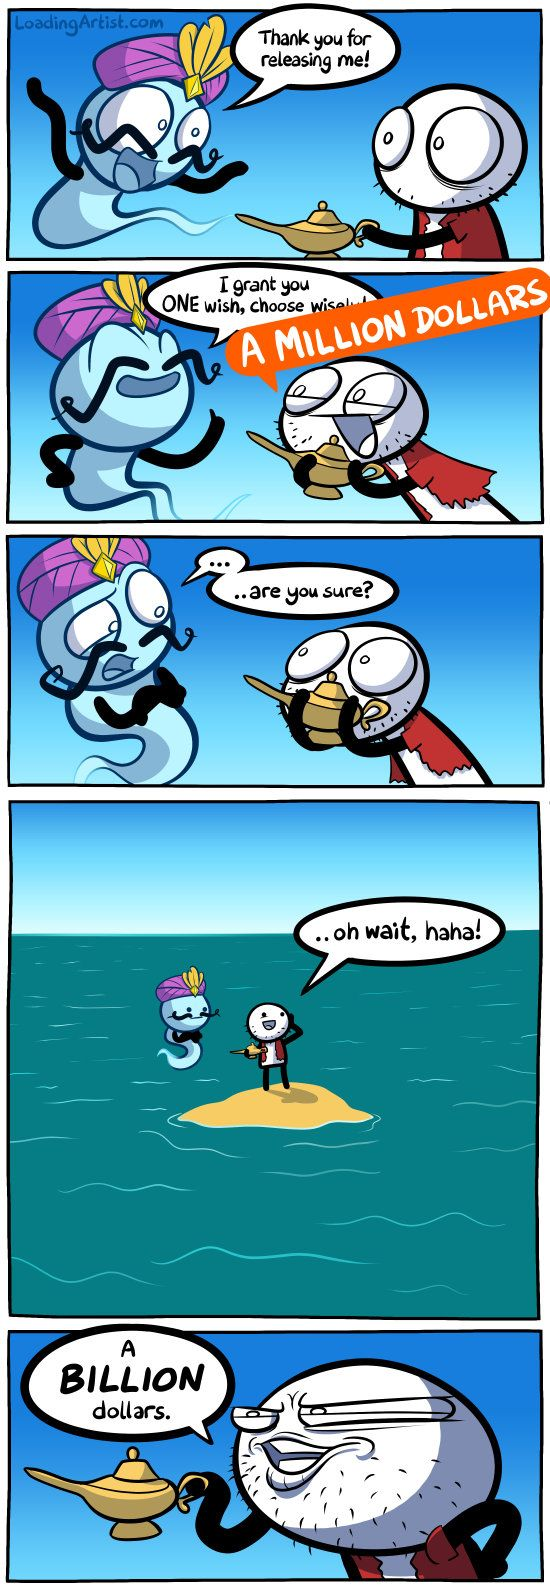 I grant you ONE wish, so choose wisely.. click to view full comic!